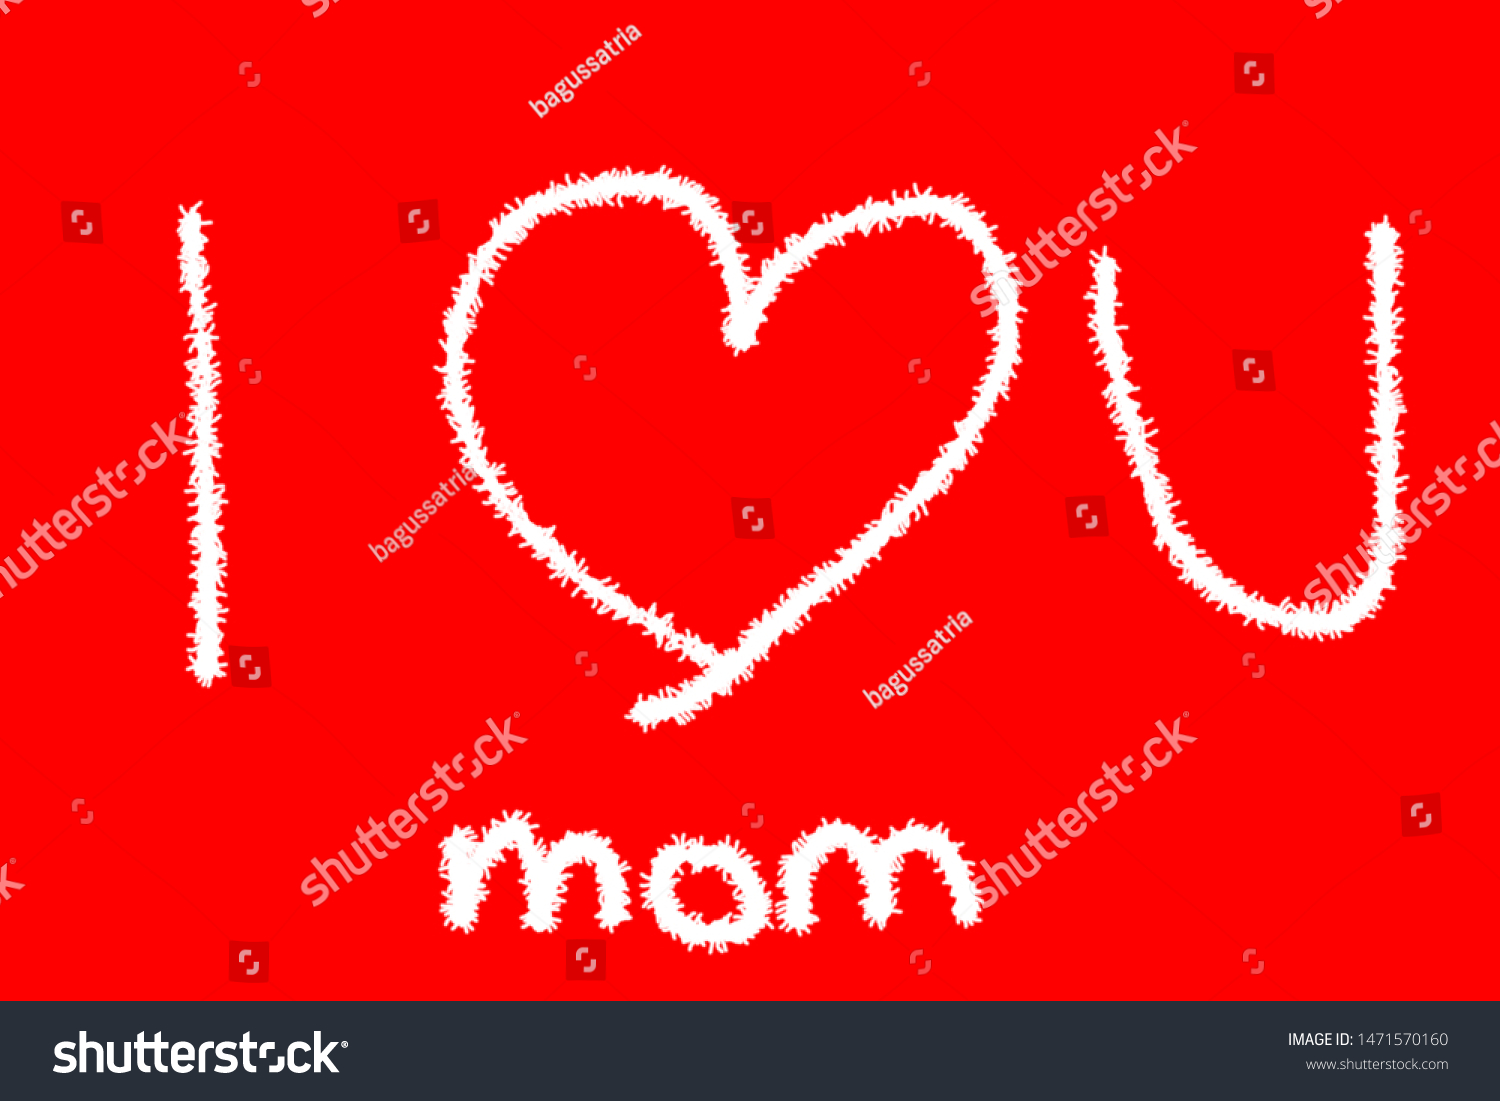 stock photo illustration of love for mom and dad with red art brushes and wallpapers suitable for wallpapers 1471570160